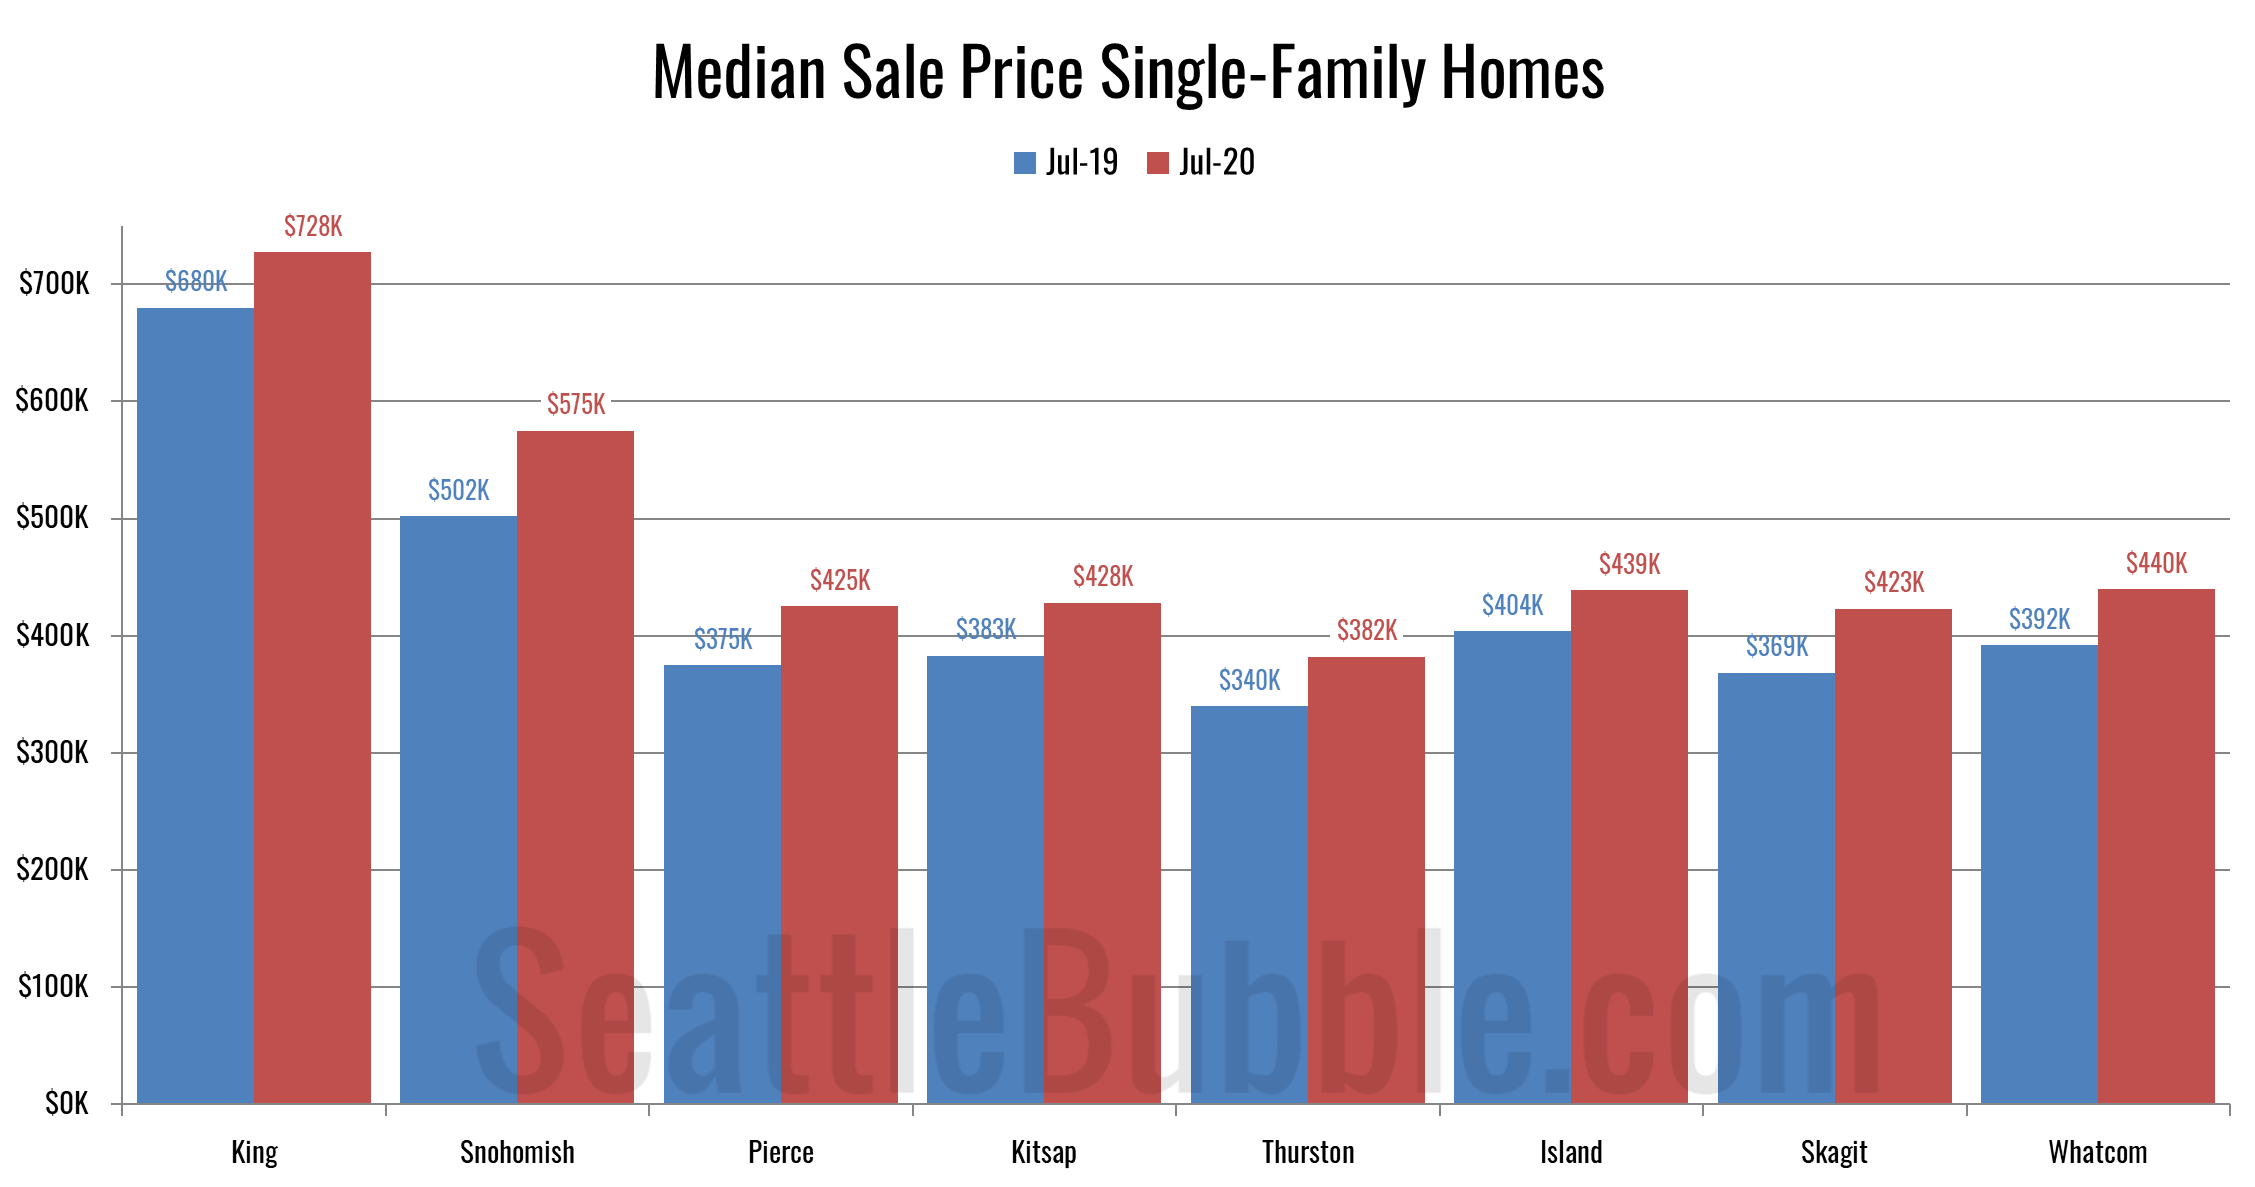 Median Sale Price Single-Family Homes (July 2020)